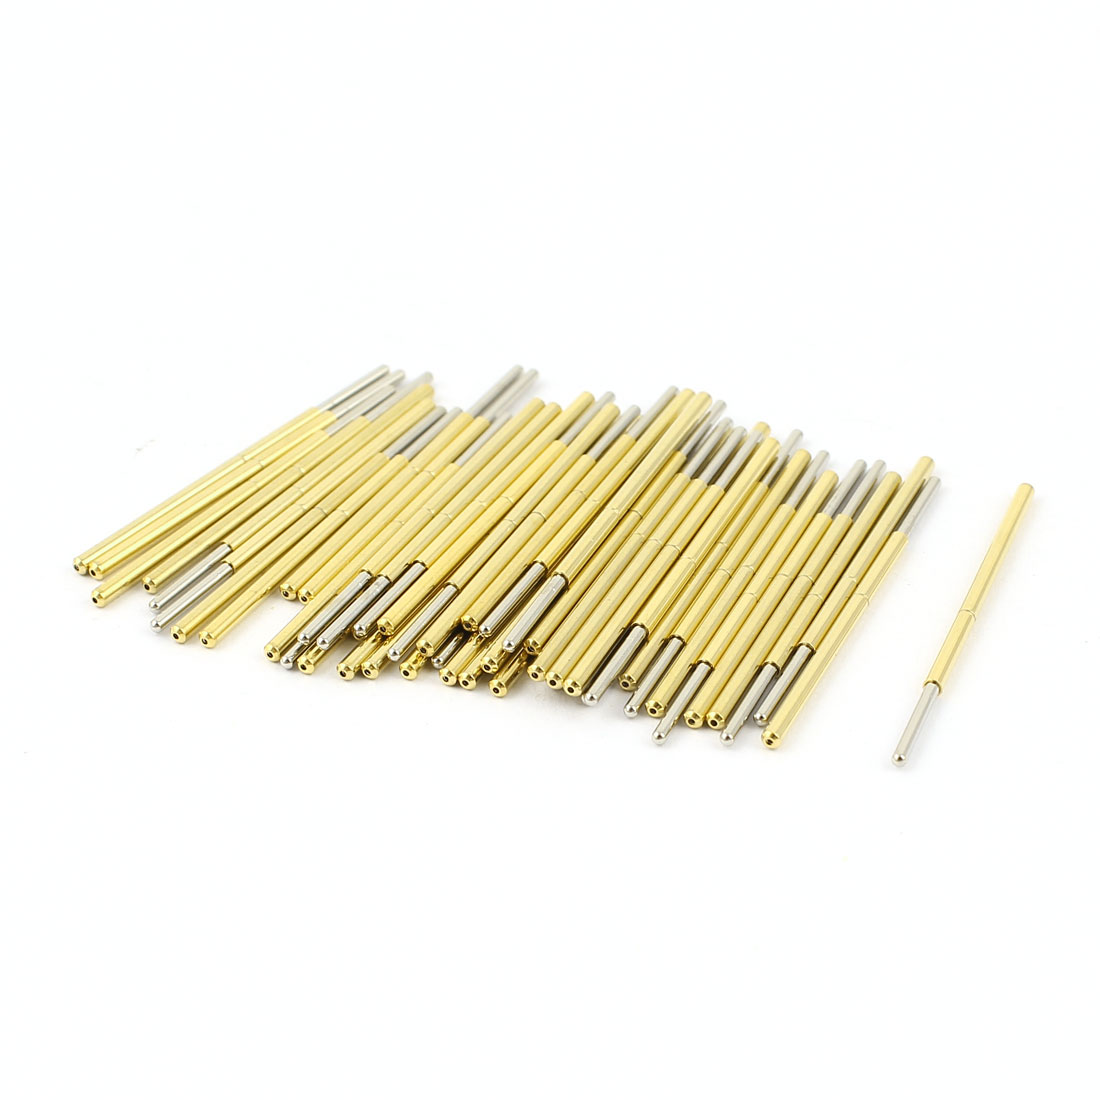 50 Pcs P100-J1 1.0mm Spherical Tip Spring Testing Probes Pin 33.3mm Length